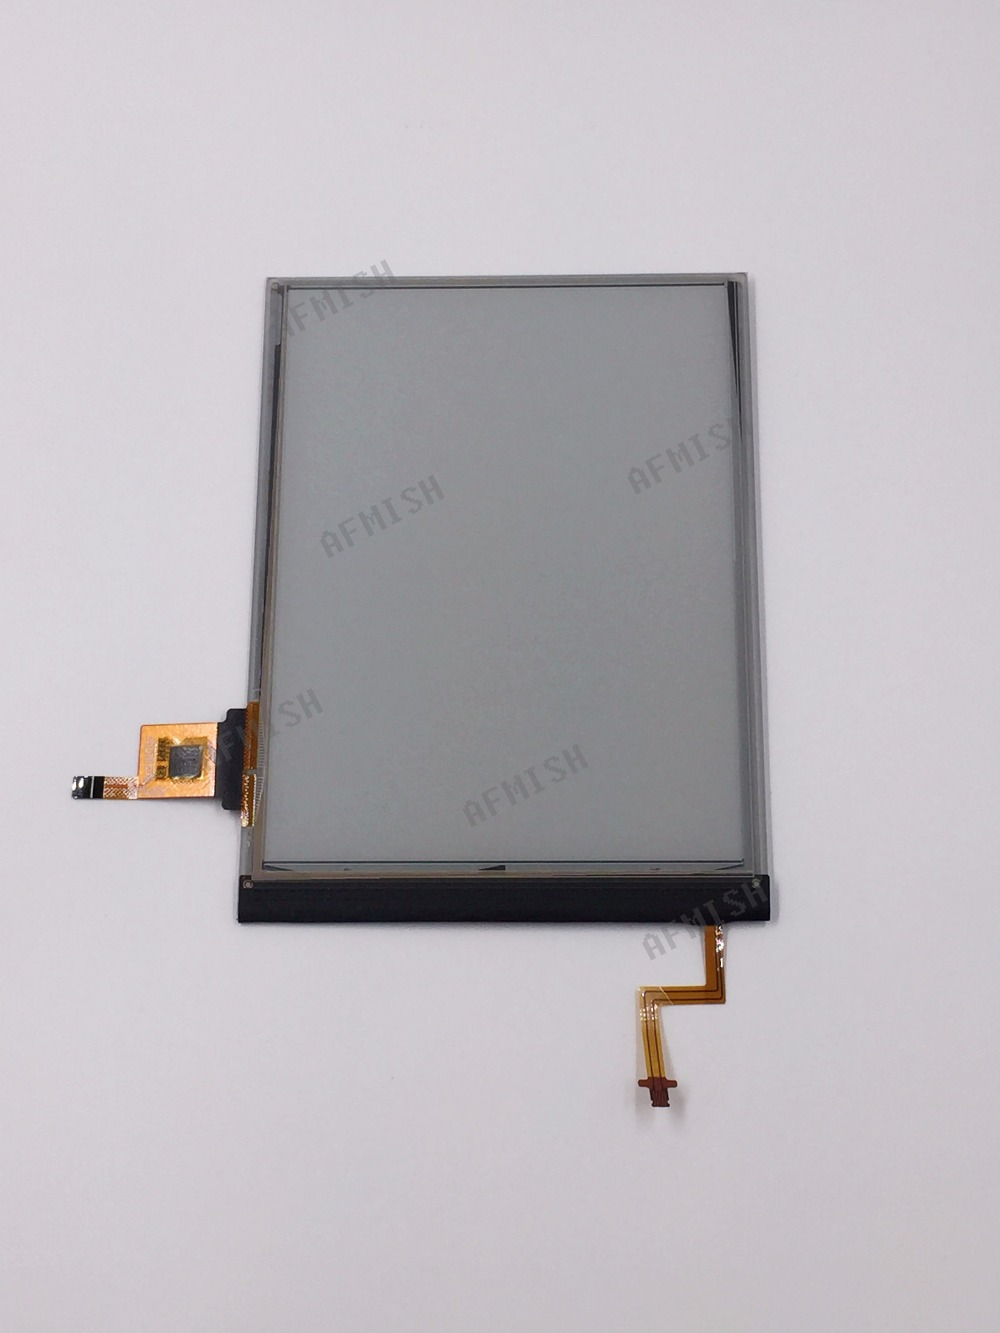 Active 100% New Eink Lcd Display Screen For Digma R63s With Backlight And Touch Free Shipping Reputation First